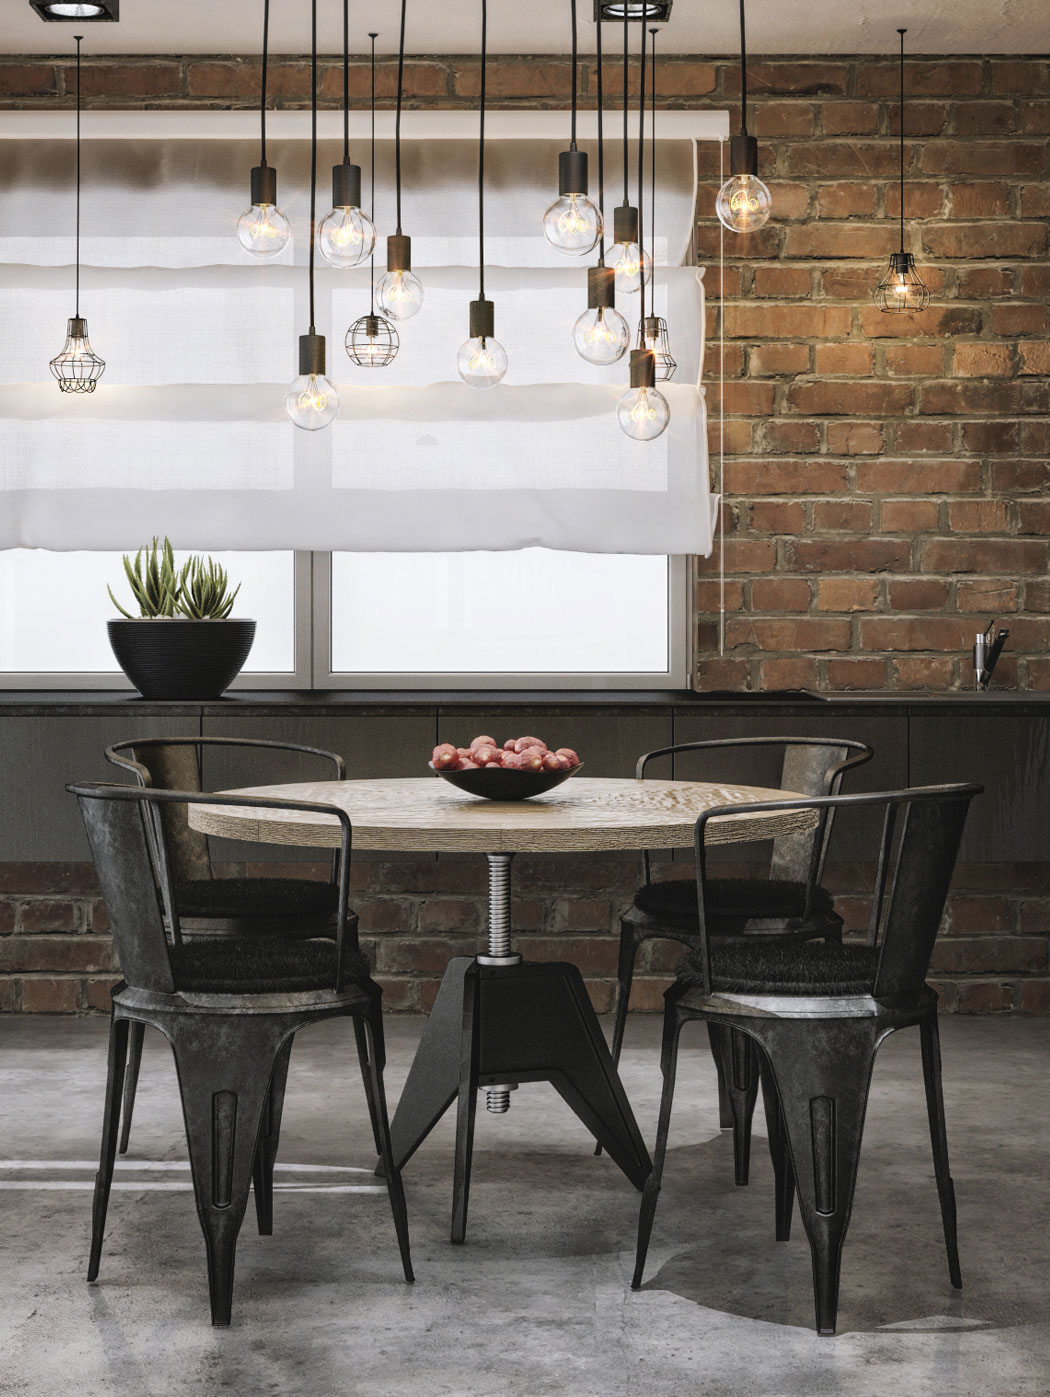 Edison bulbs bring classic industrial charm to the modern dining room